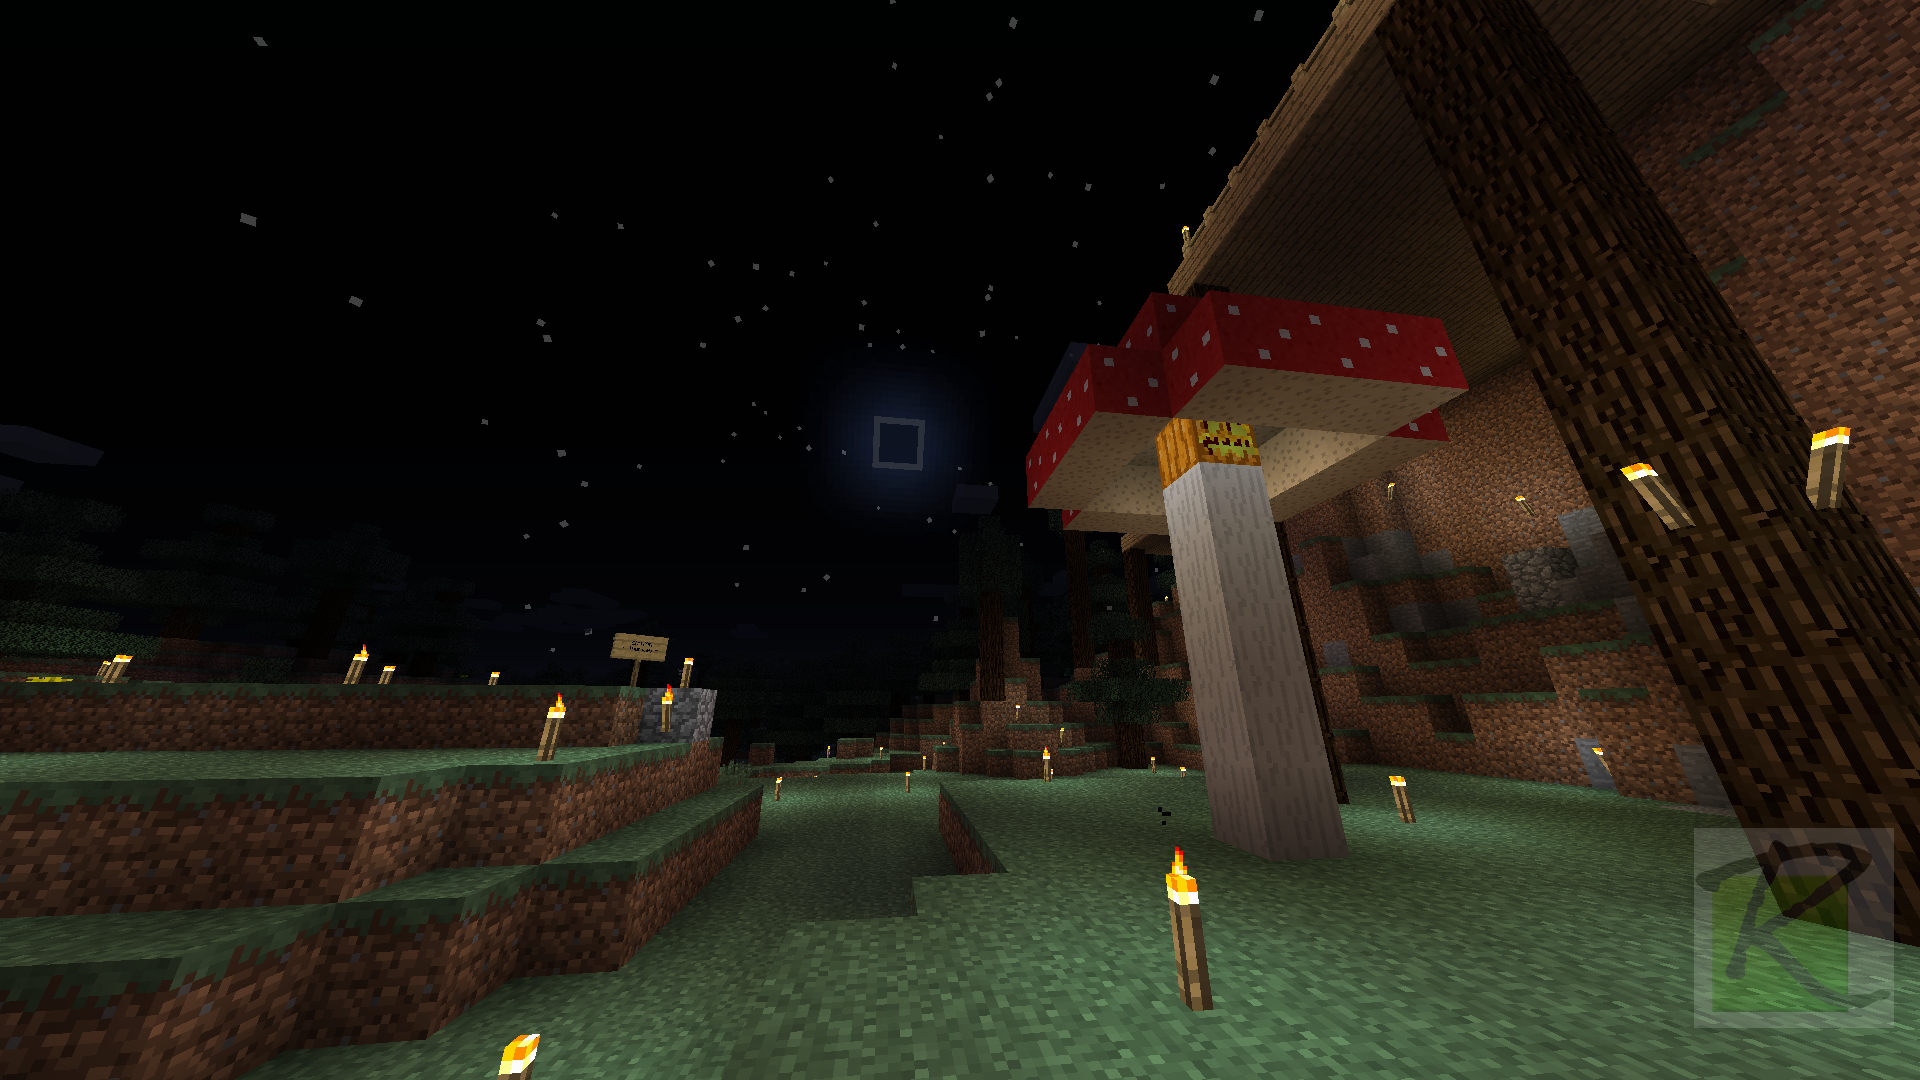 new moon behind pumpkin sombrero minecraft screenshots a visual